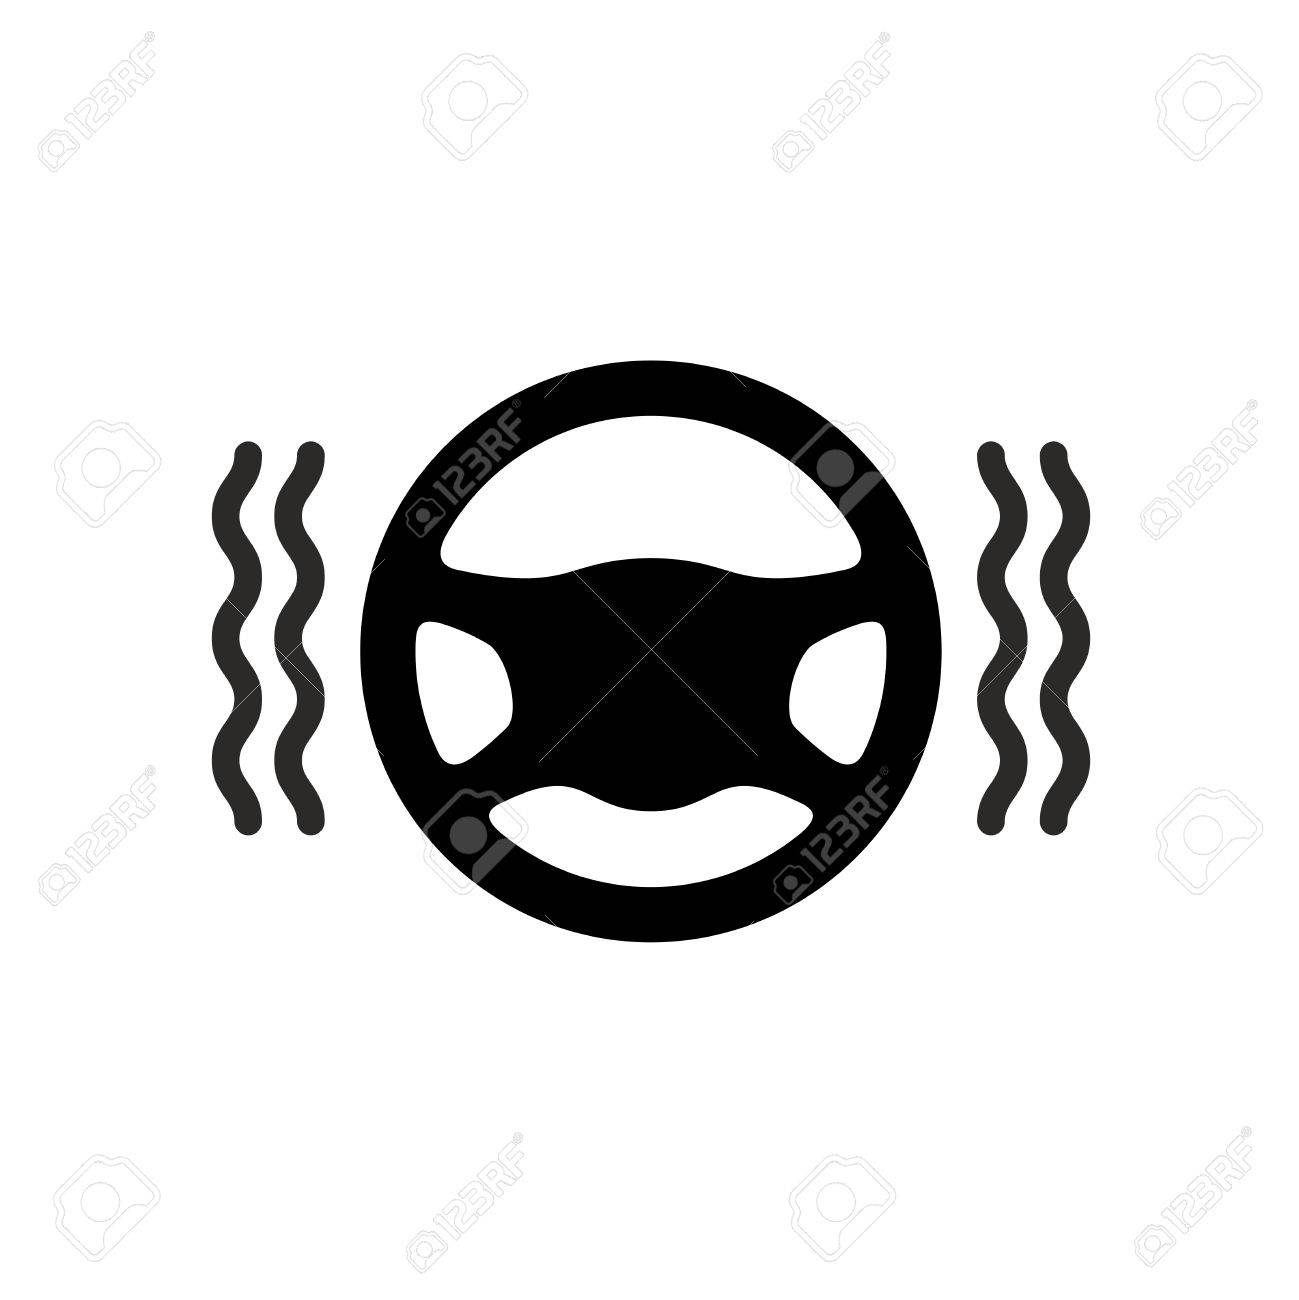 Driving Wheel Warmer Icon Black Silhouette Of Car Steering Wheel Royalty Free Cliparts Vectors And Stock Illustration Image 68870518